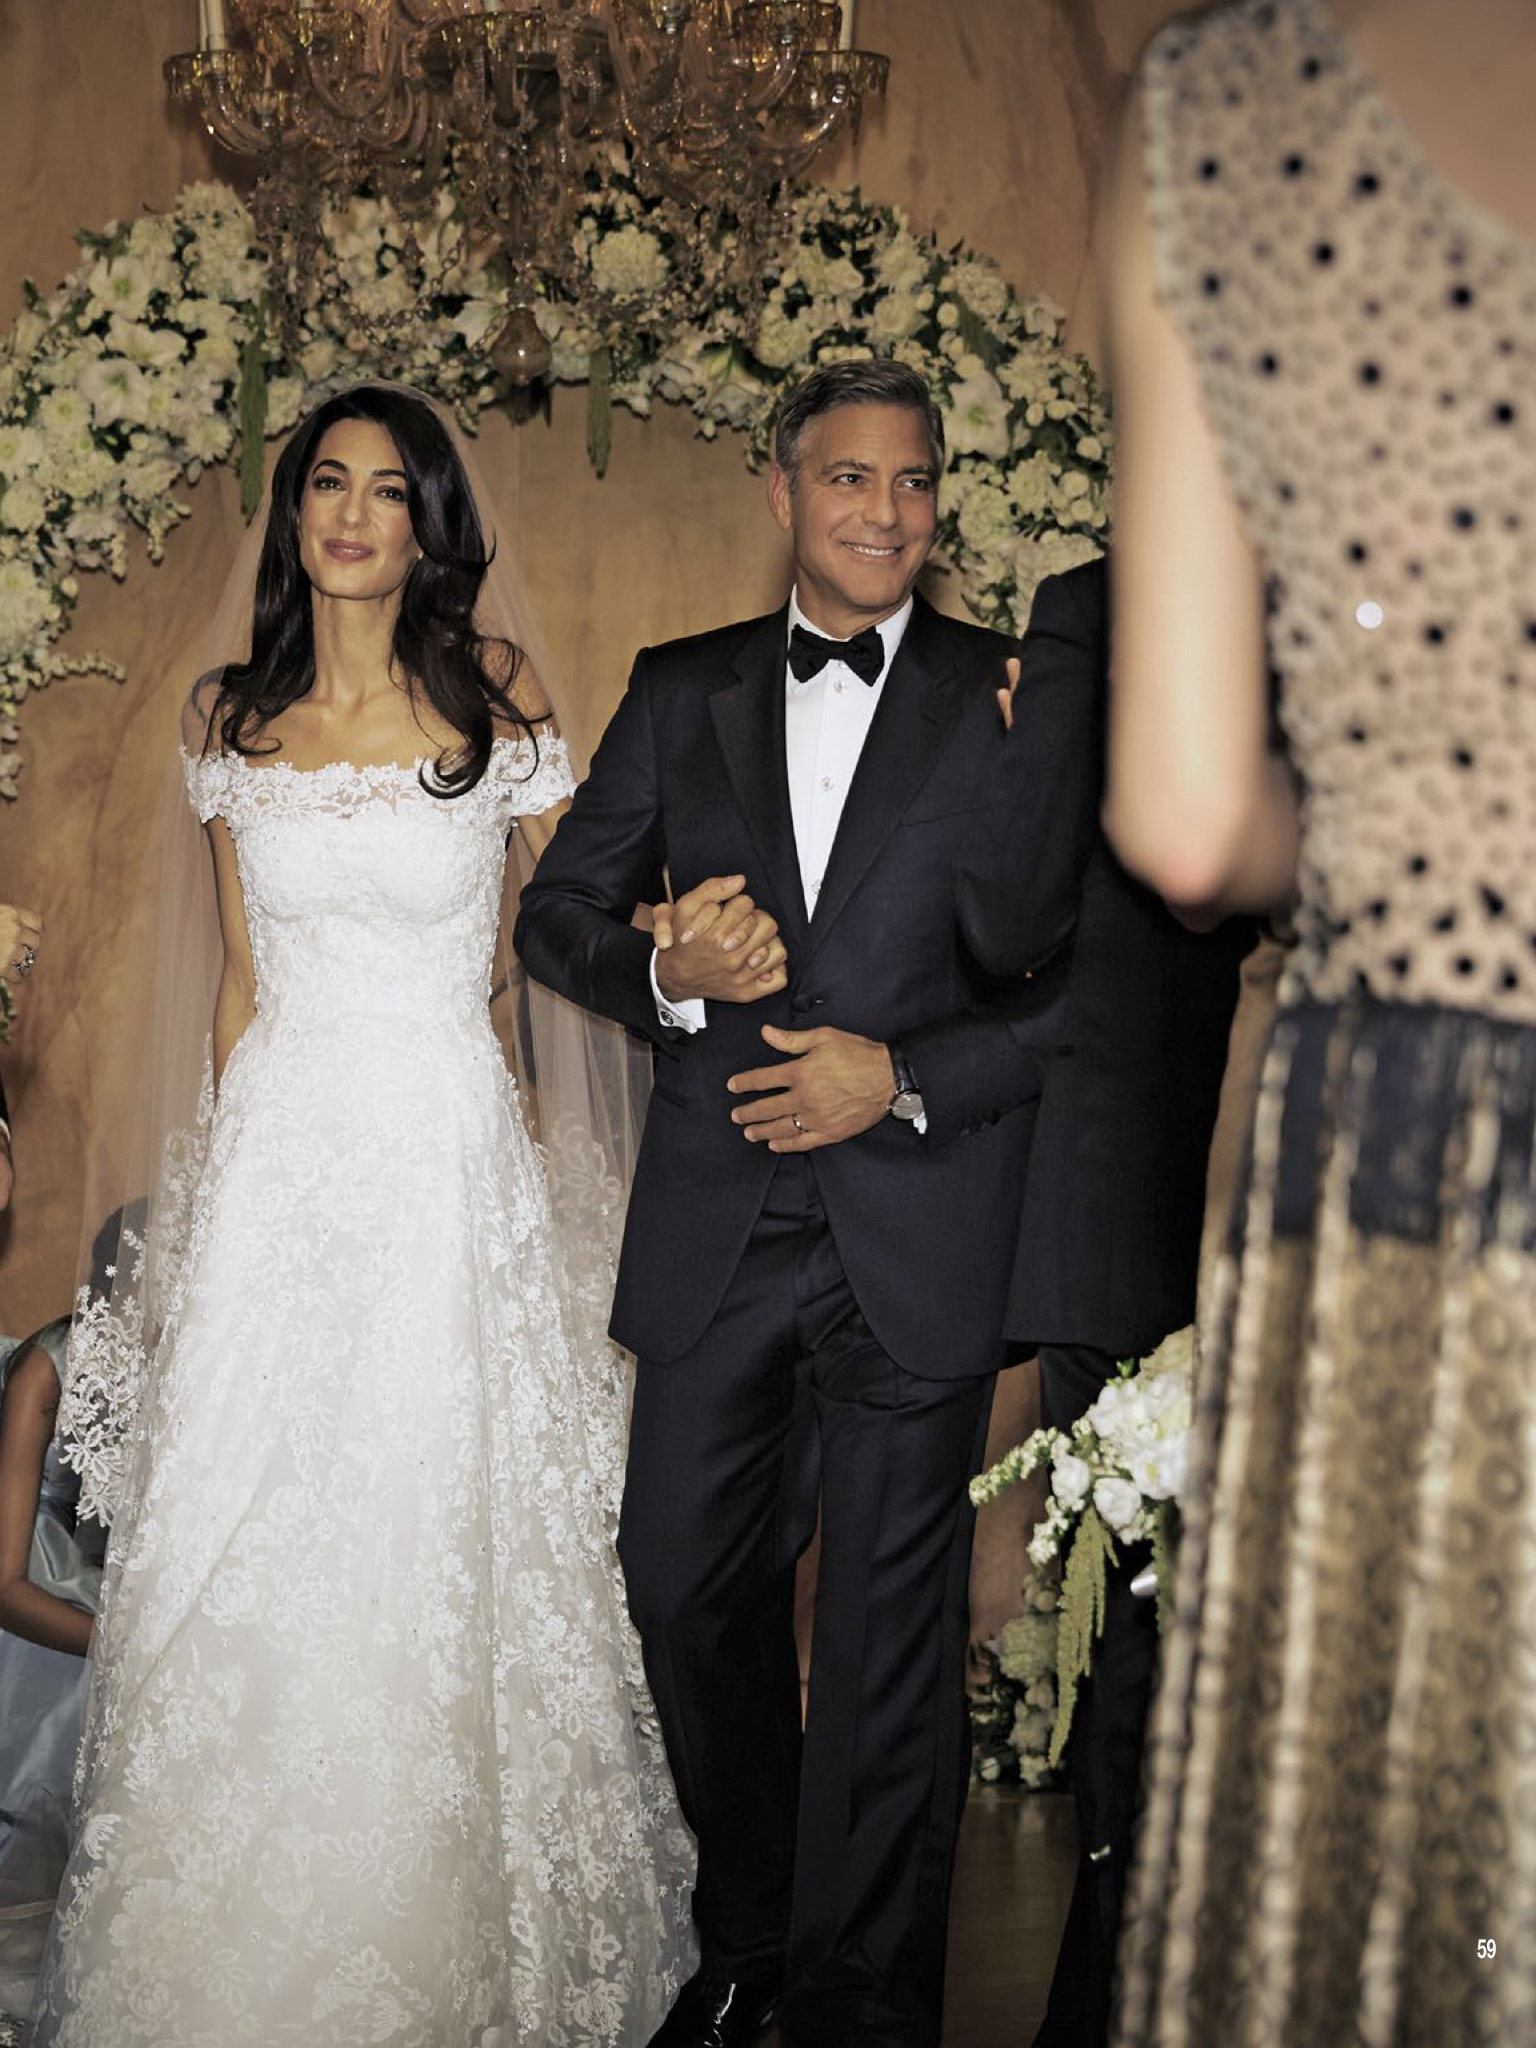 Amal Alamuddin and George Clooney wedding pictures album